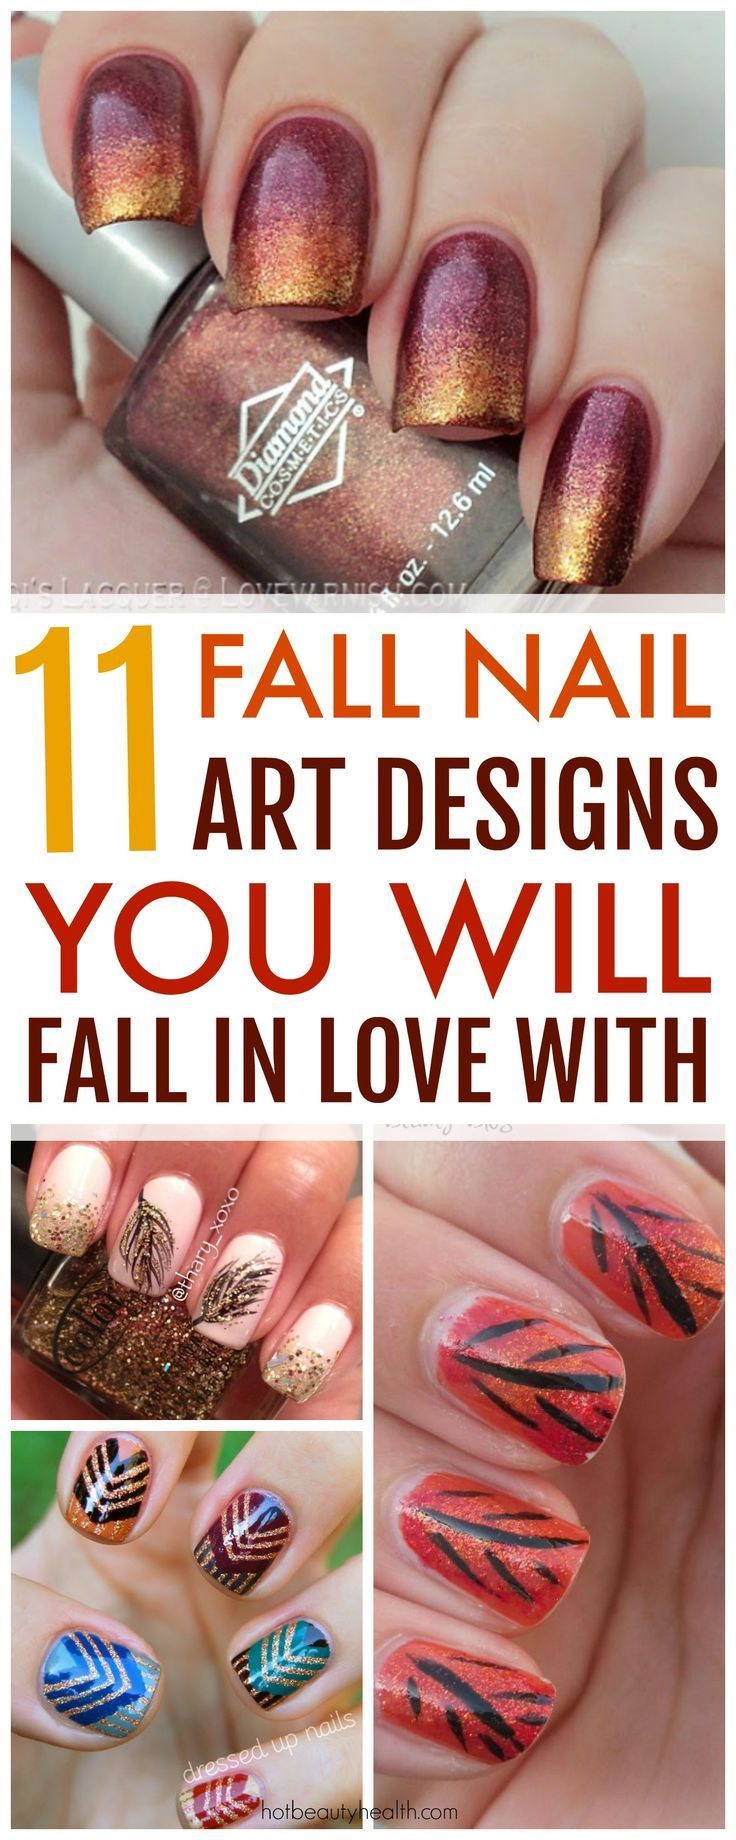 3708 best cool nail designs images on pinterest | make up